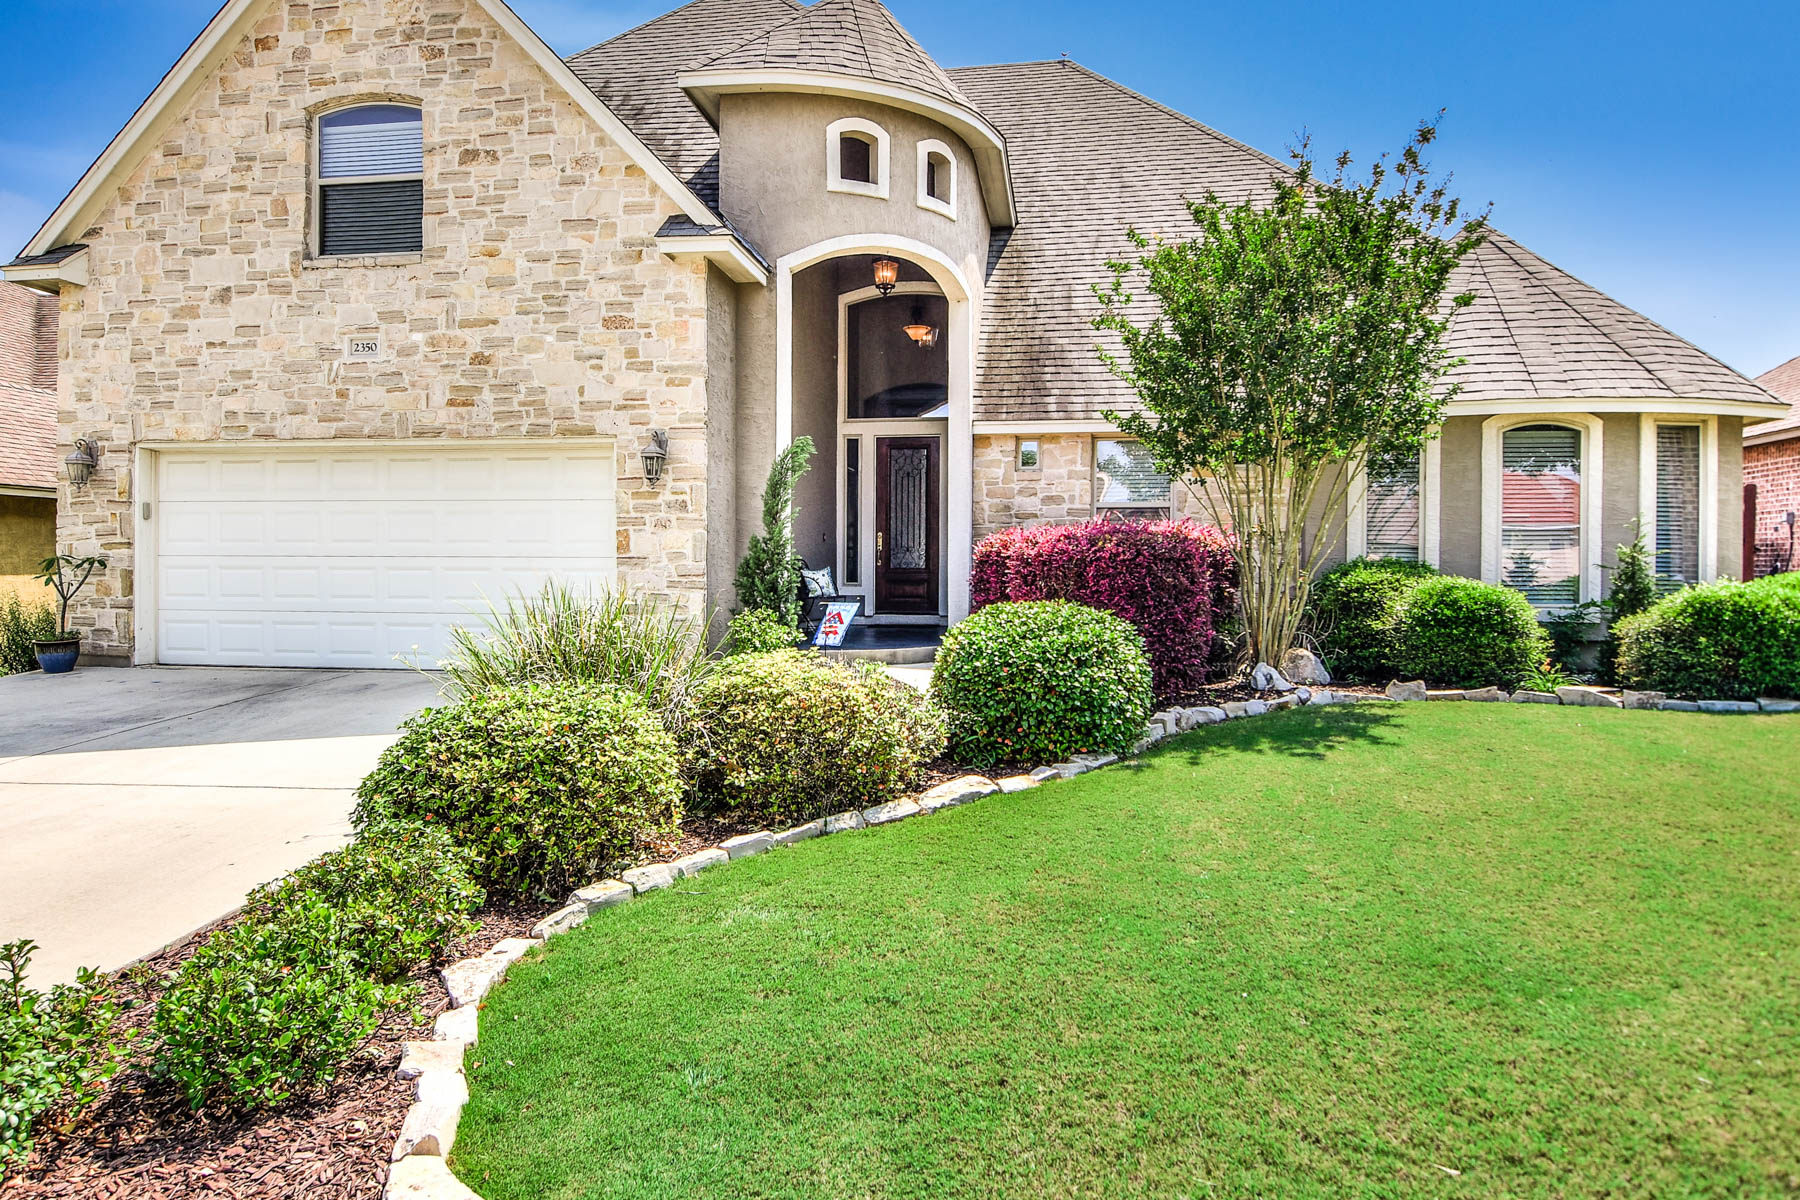 Single Family Home for Sale at Stunning Parker-Built Home in North Ranch Estates 2350 N Ranch Estates New Braunfels, Texas 78130 United States